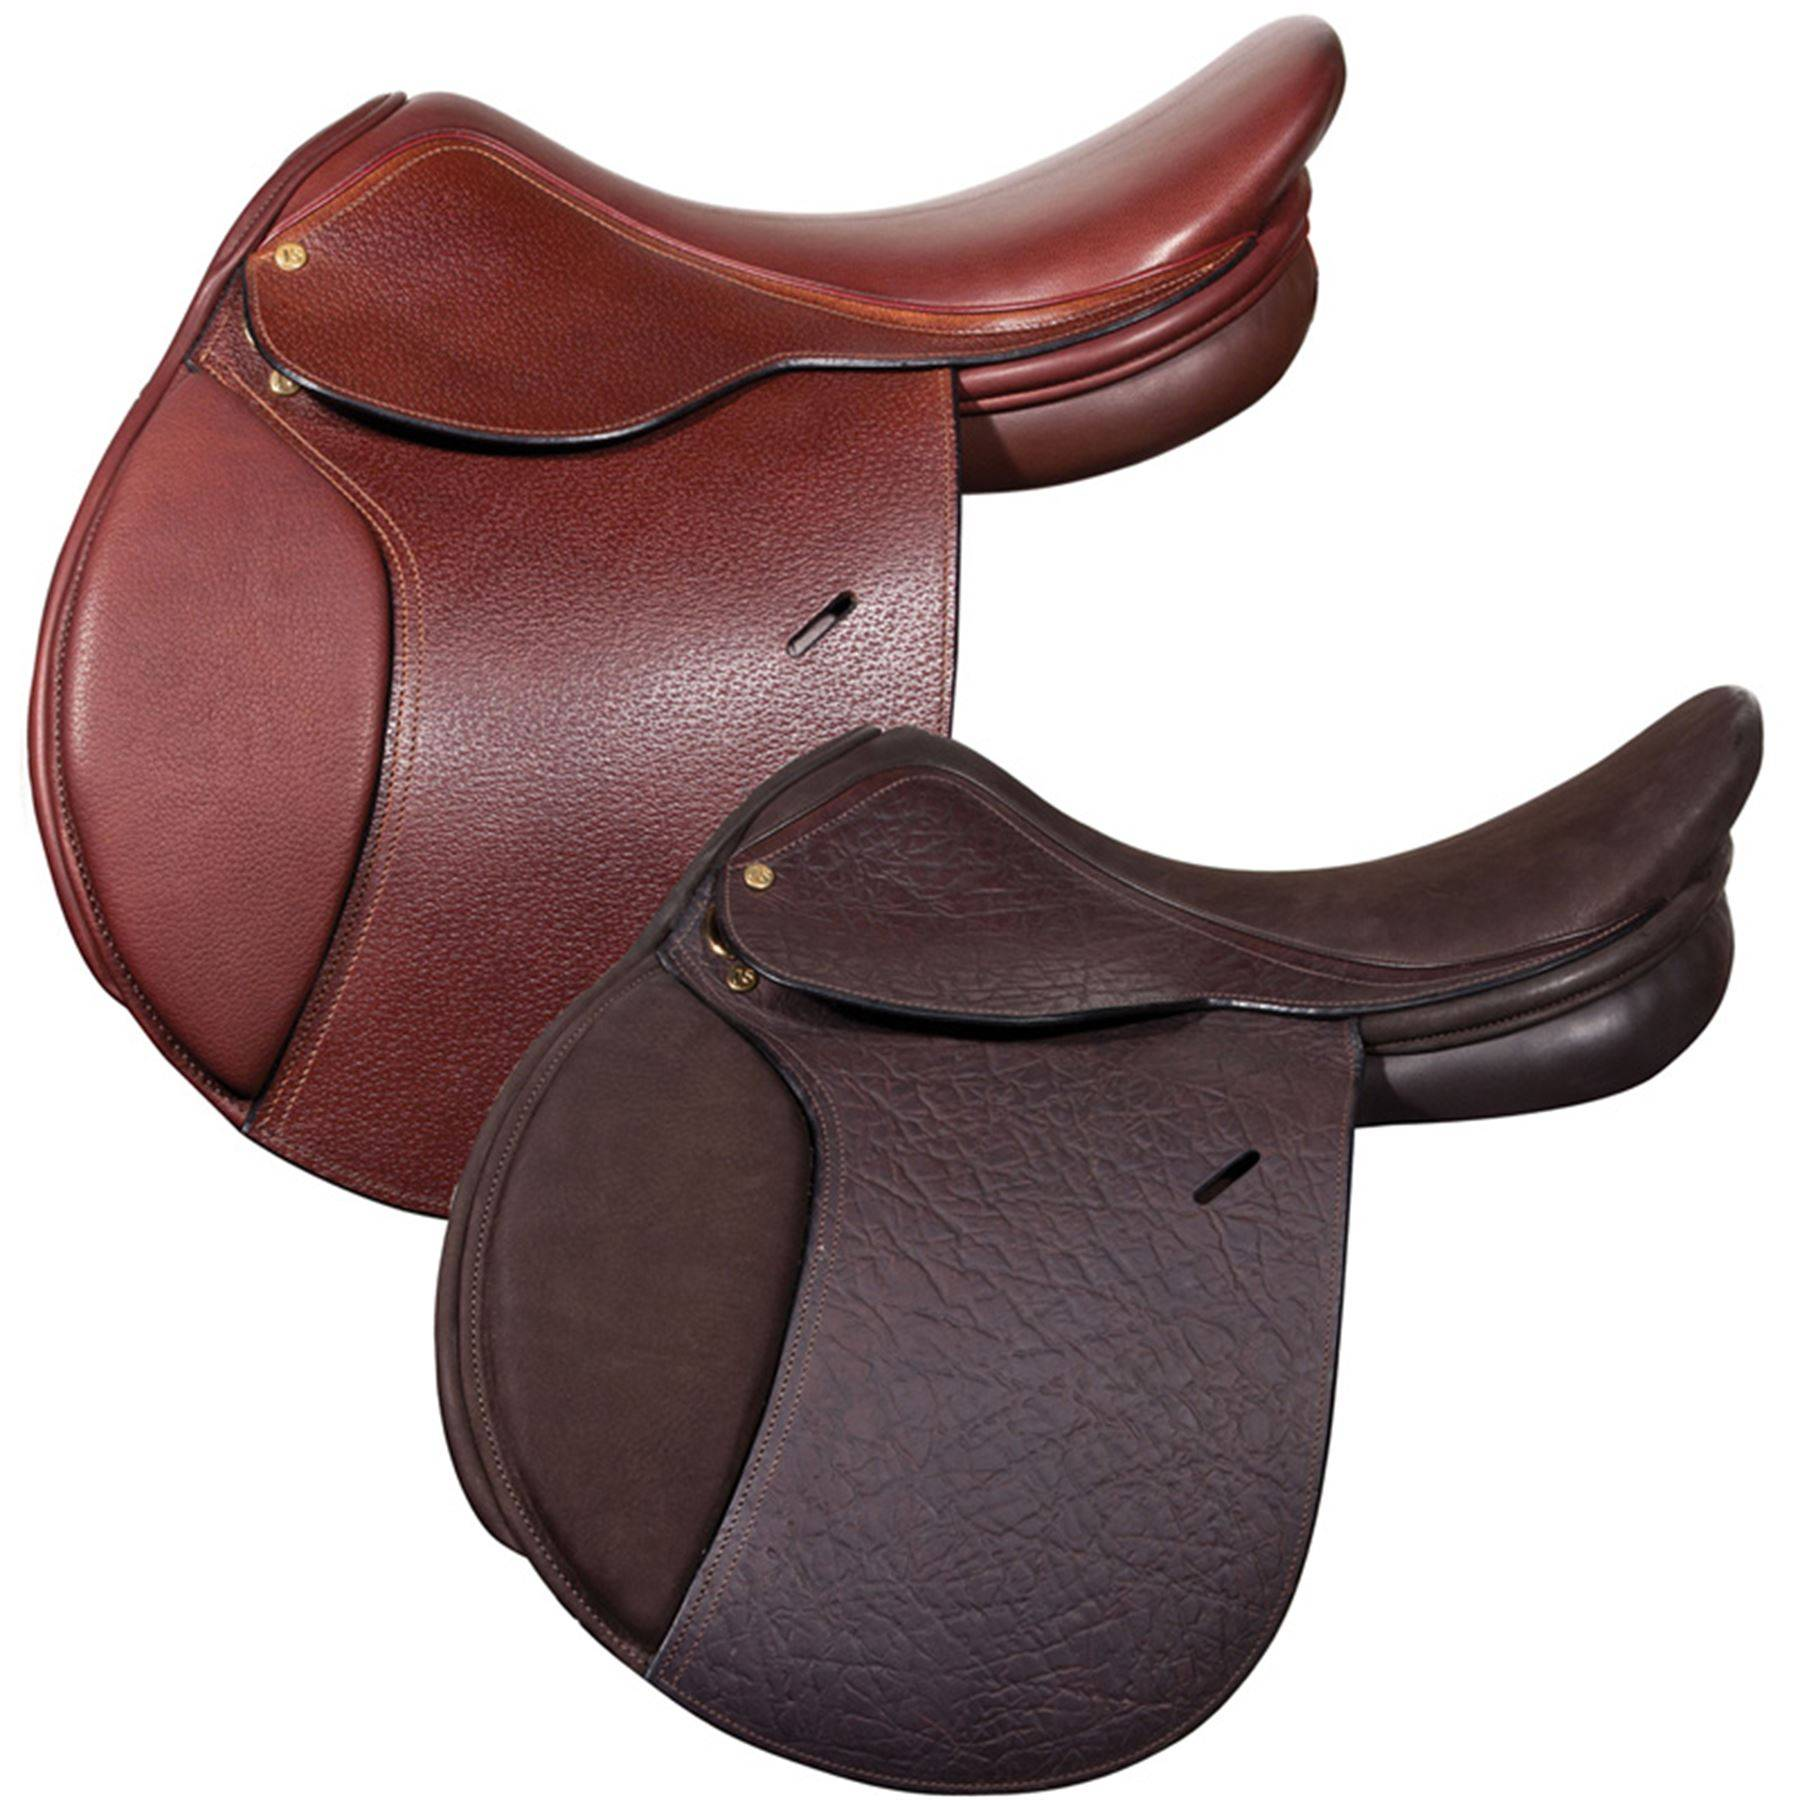 Joseph Sterling Alaise Grained Close Contact Saddle